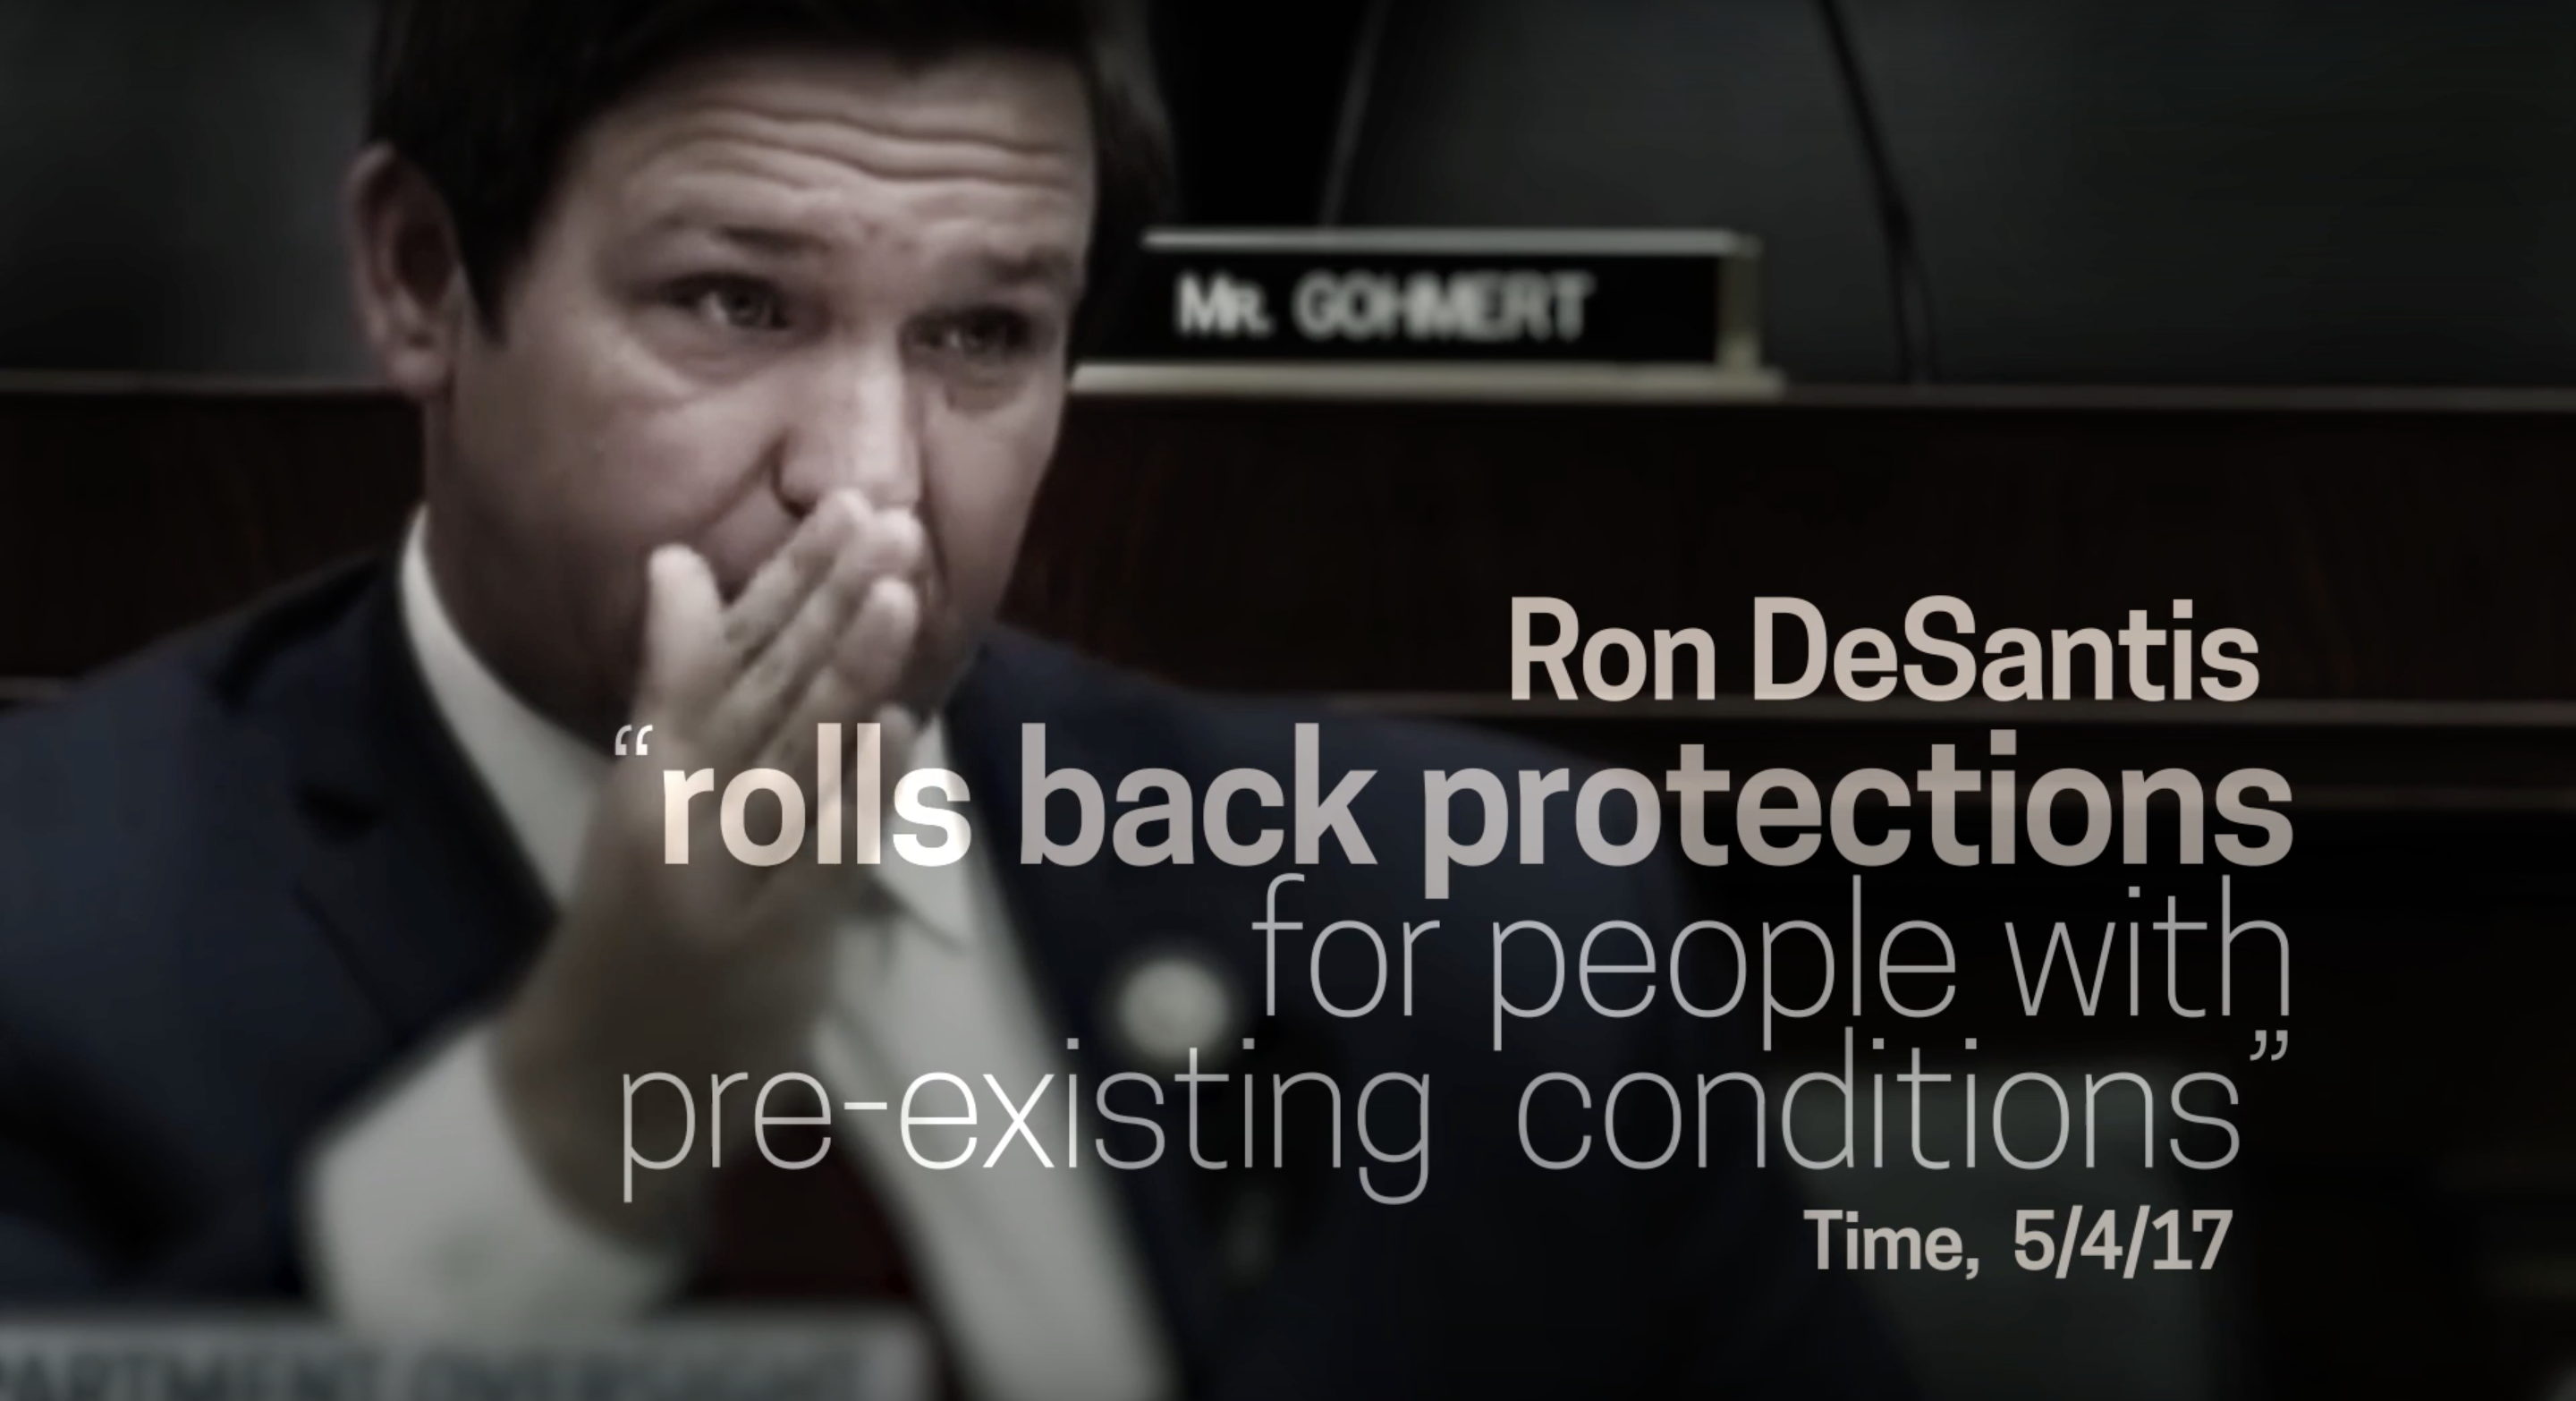 Democrats Release new Advertisement Attacking Congressman DeSantis